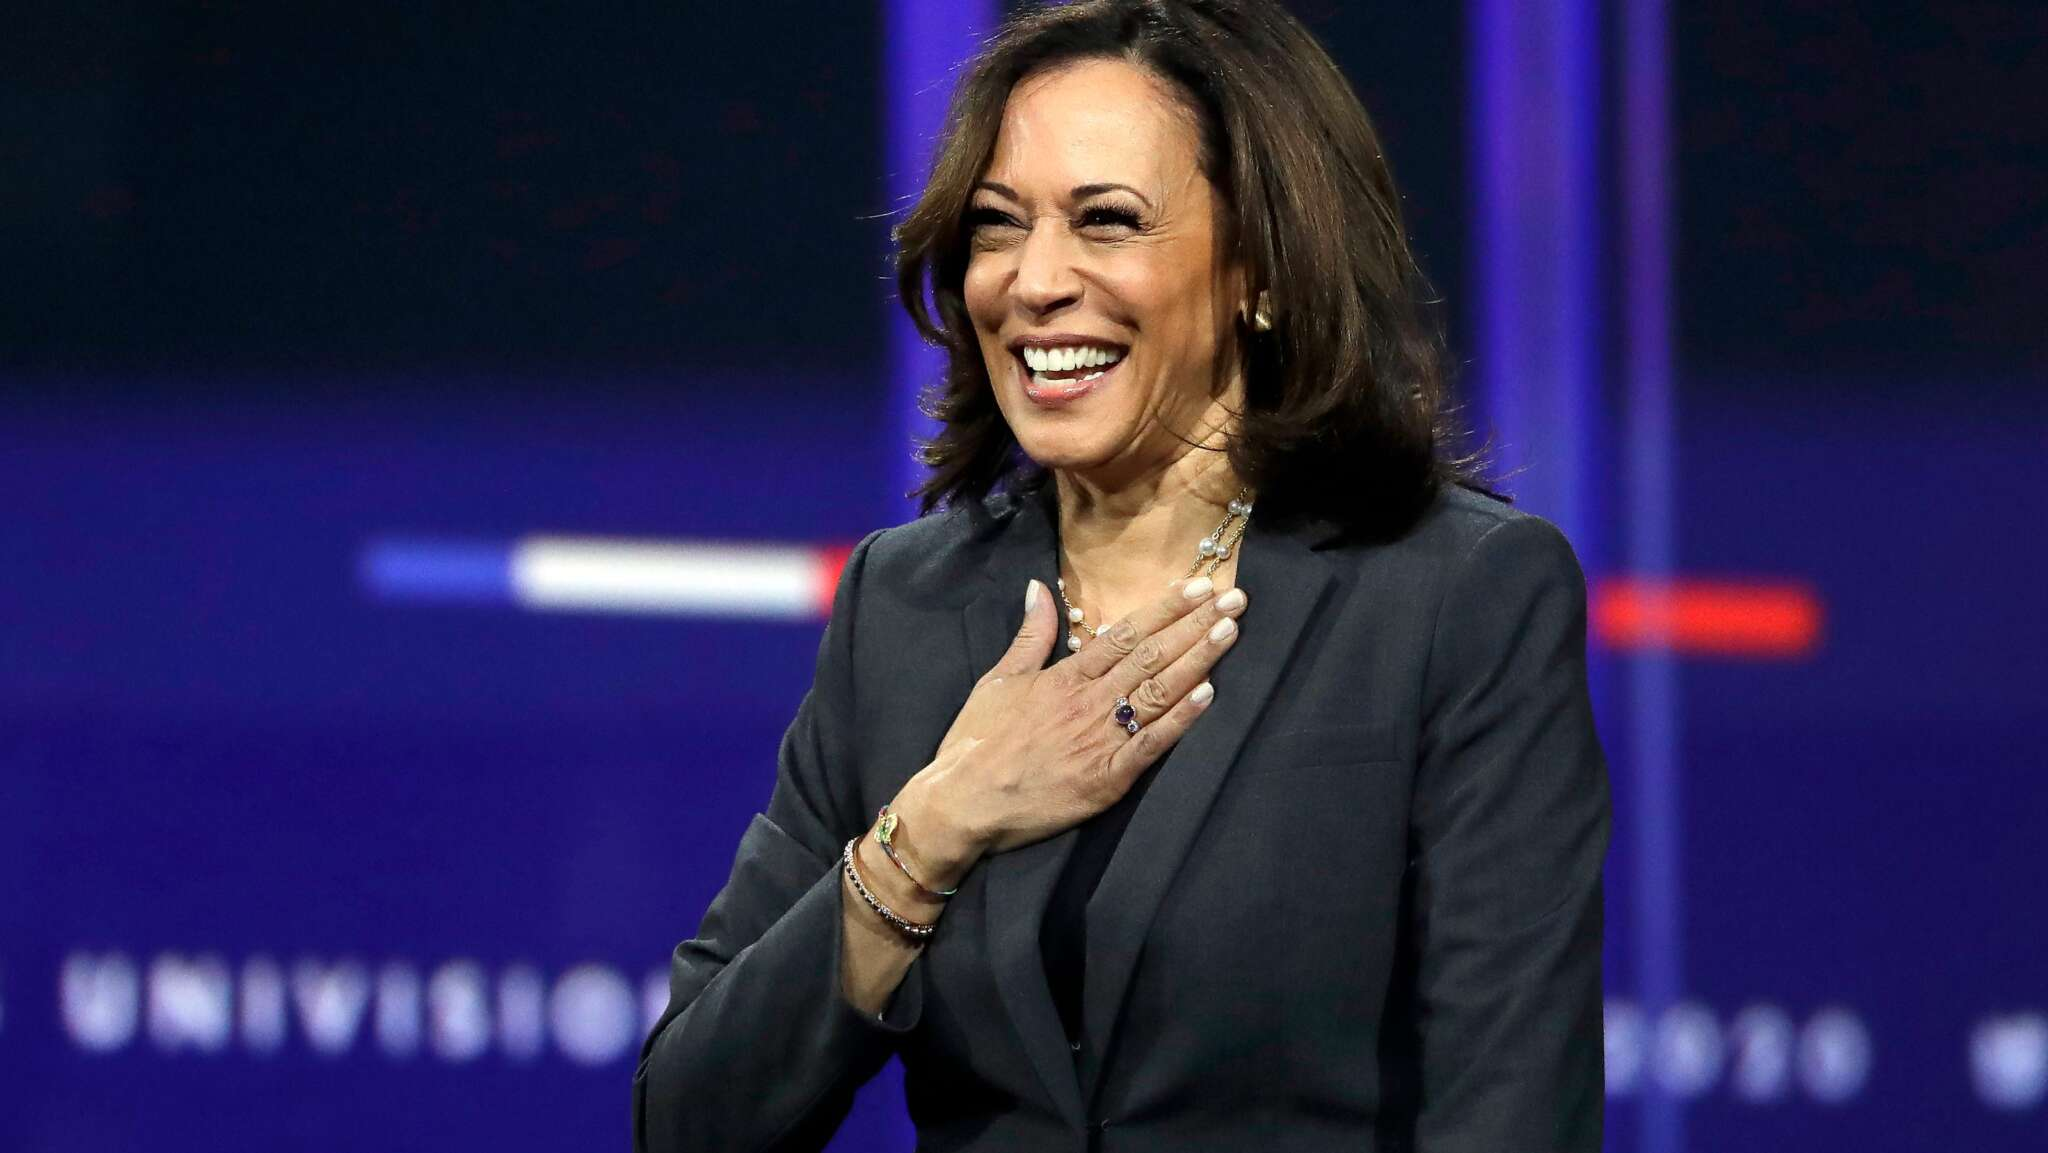 kamala-harris-makes-surprise-appearance-at-premio-lo-nuestro-and-shows-love-to-latin-artists-in-her-inspiring-speech